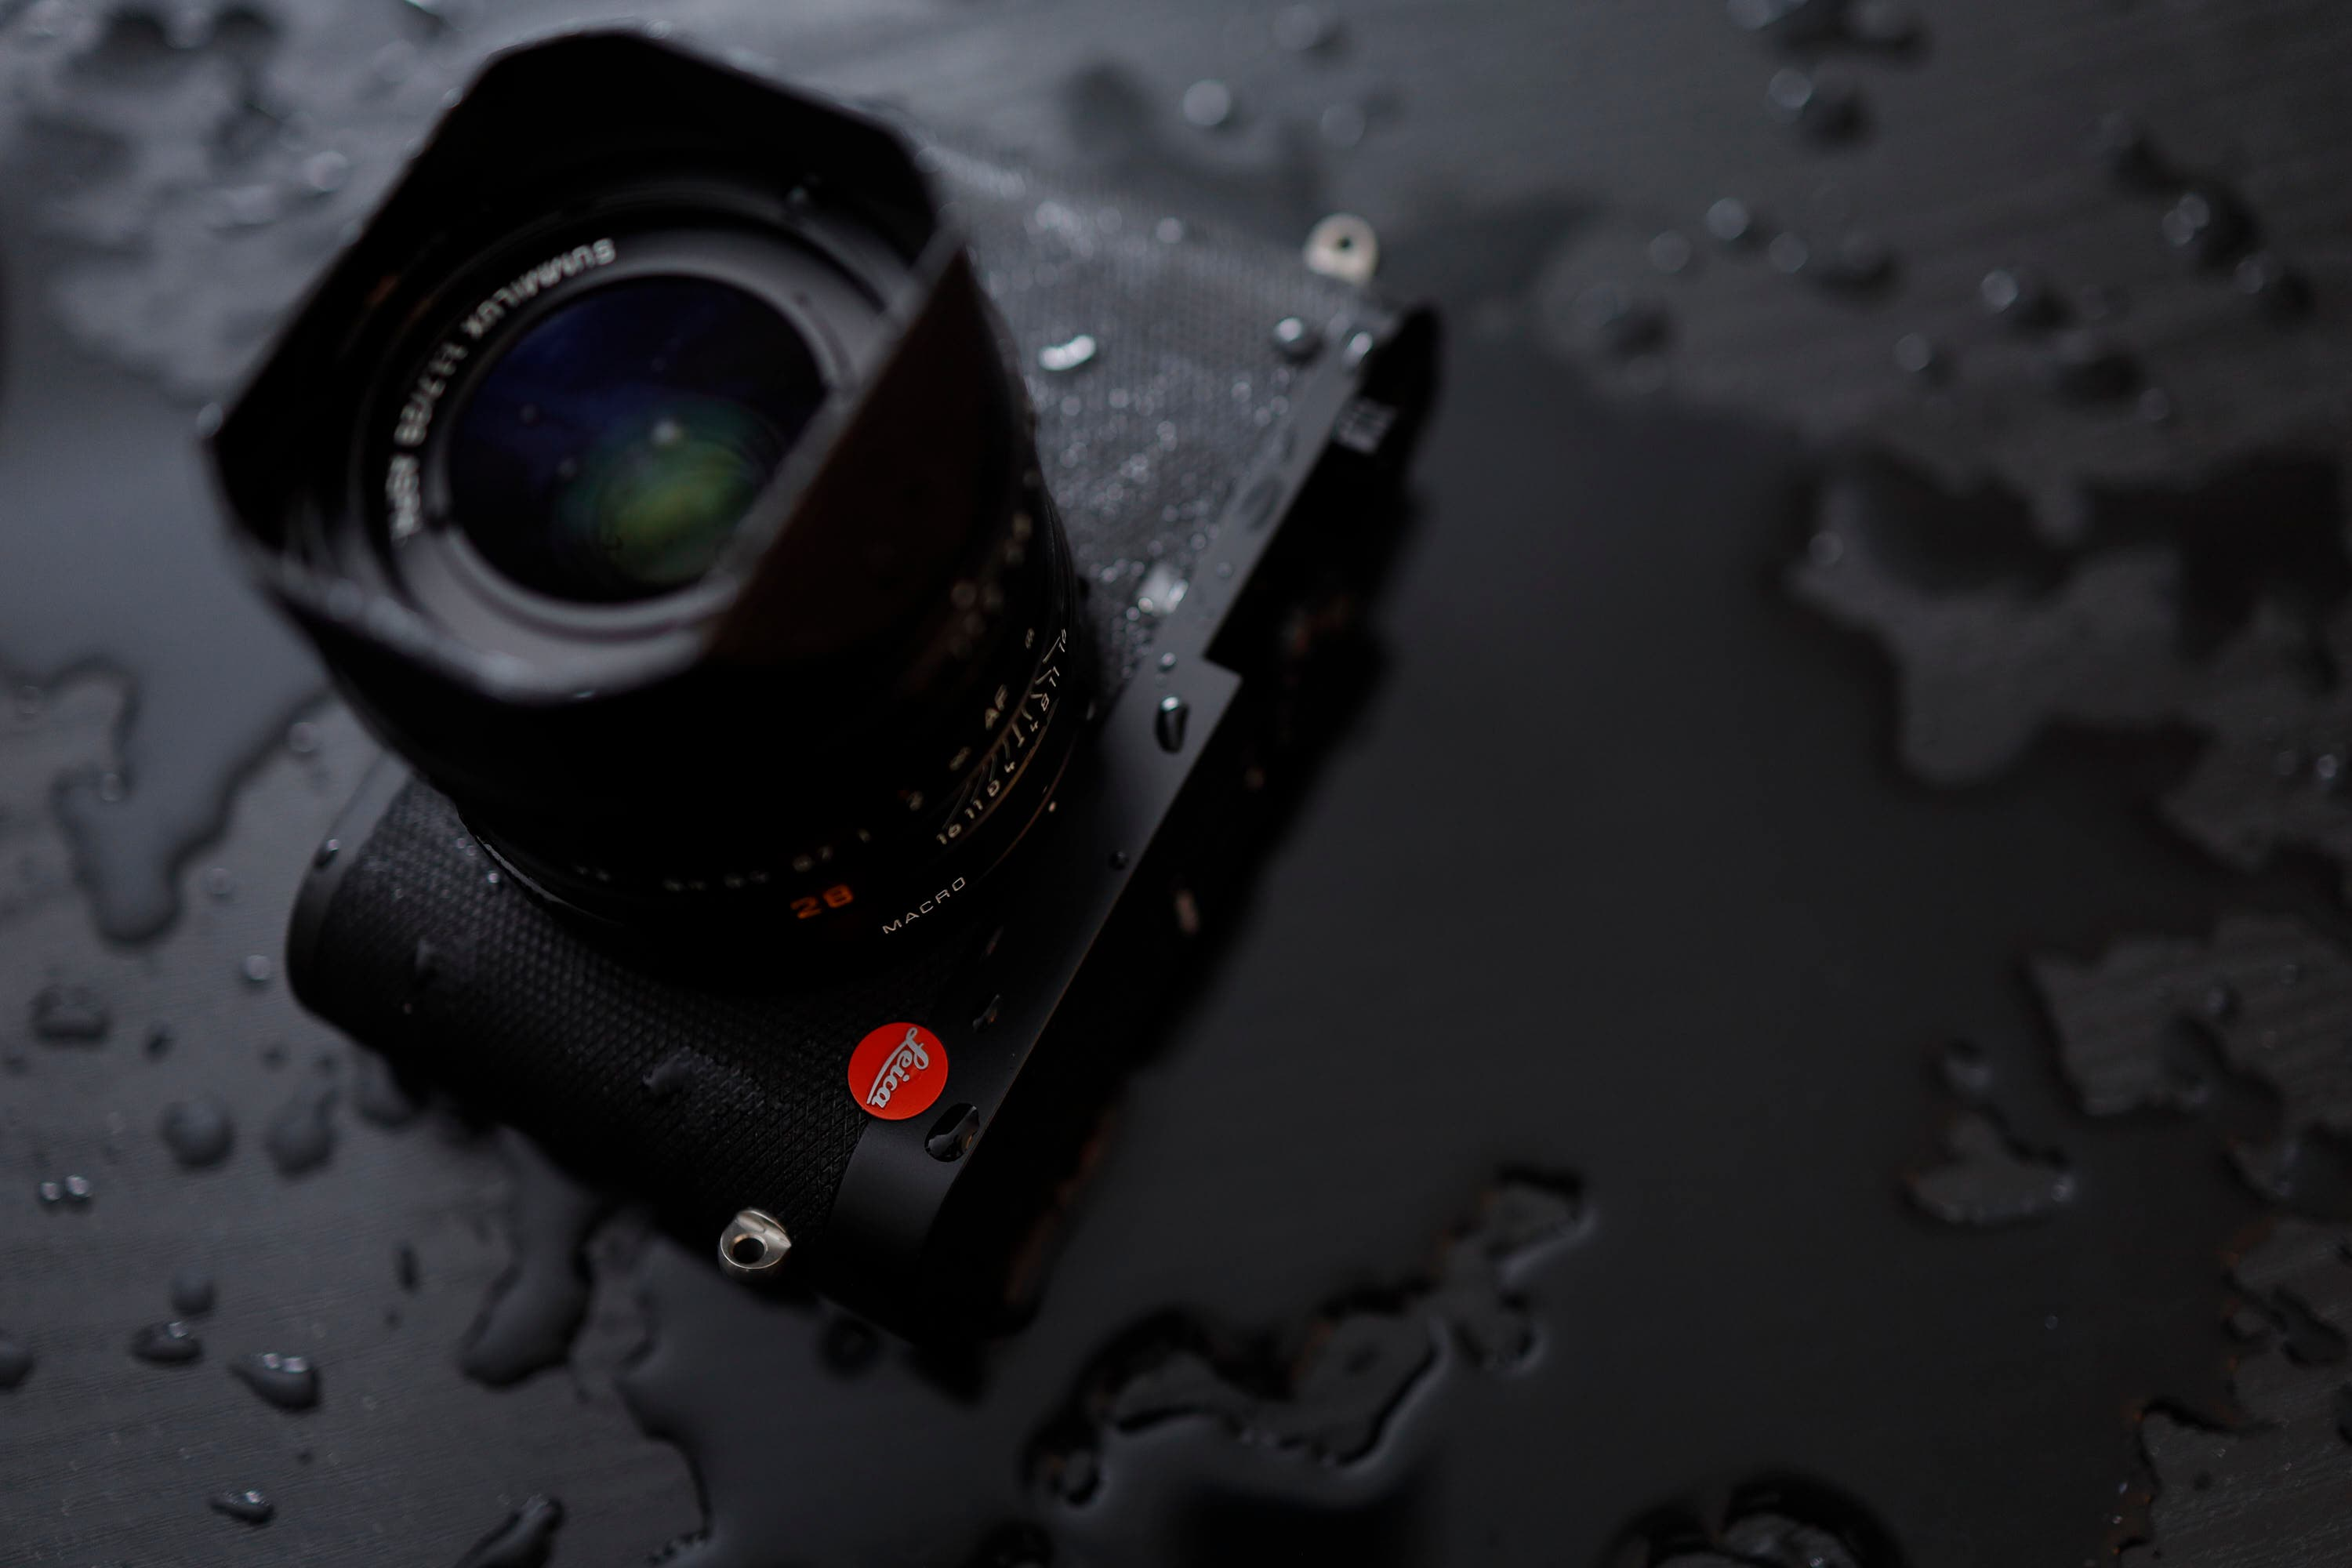 Street Photography: 8 Great Mirrorless Cameras to Hit the Streets With